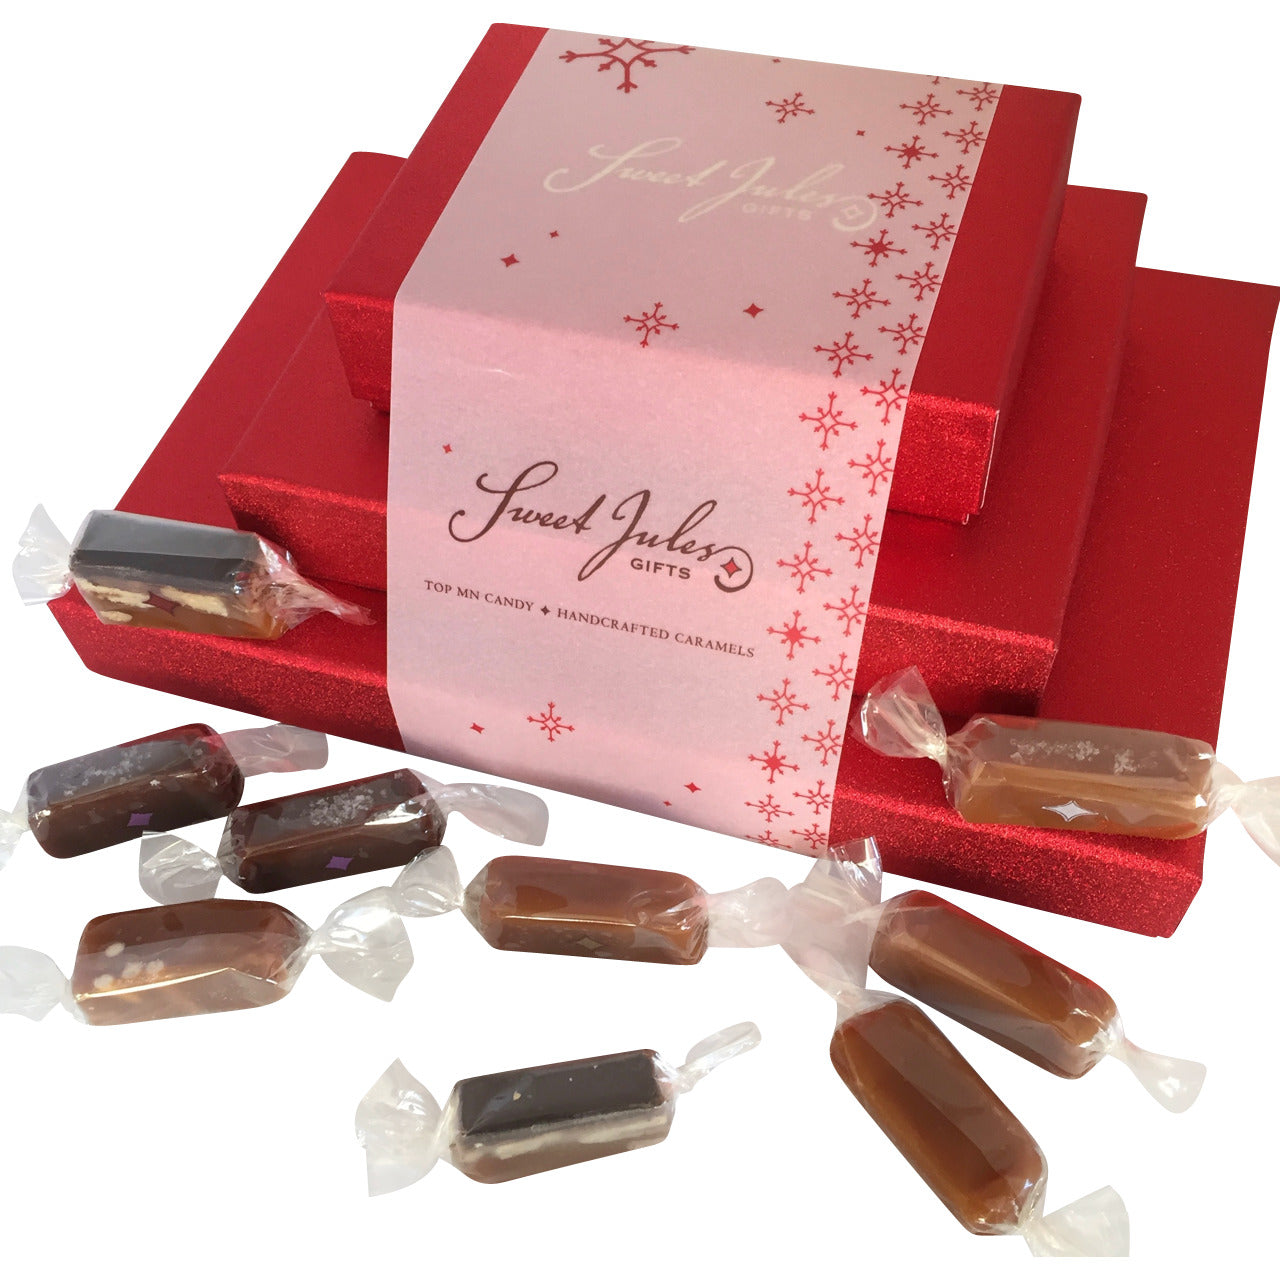 Tower of Caramels in Red Satin Boxes